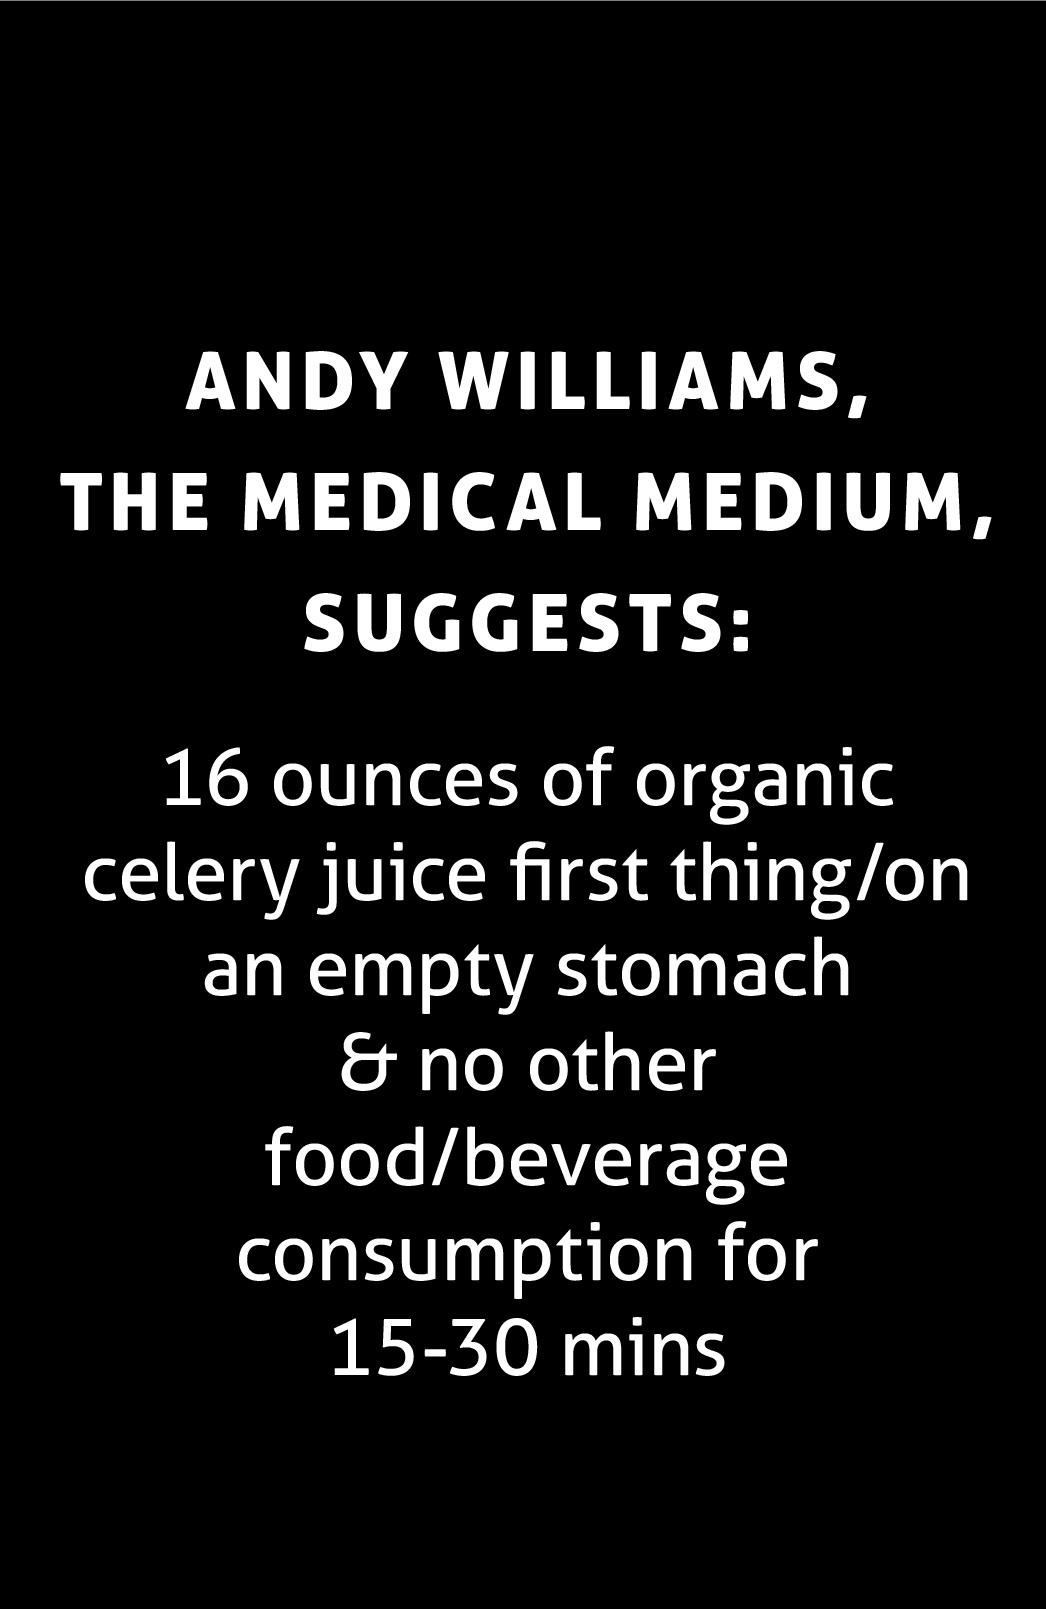 https://www.medicalmedium.com/blog/celery-juice-101